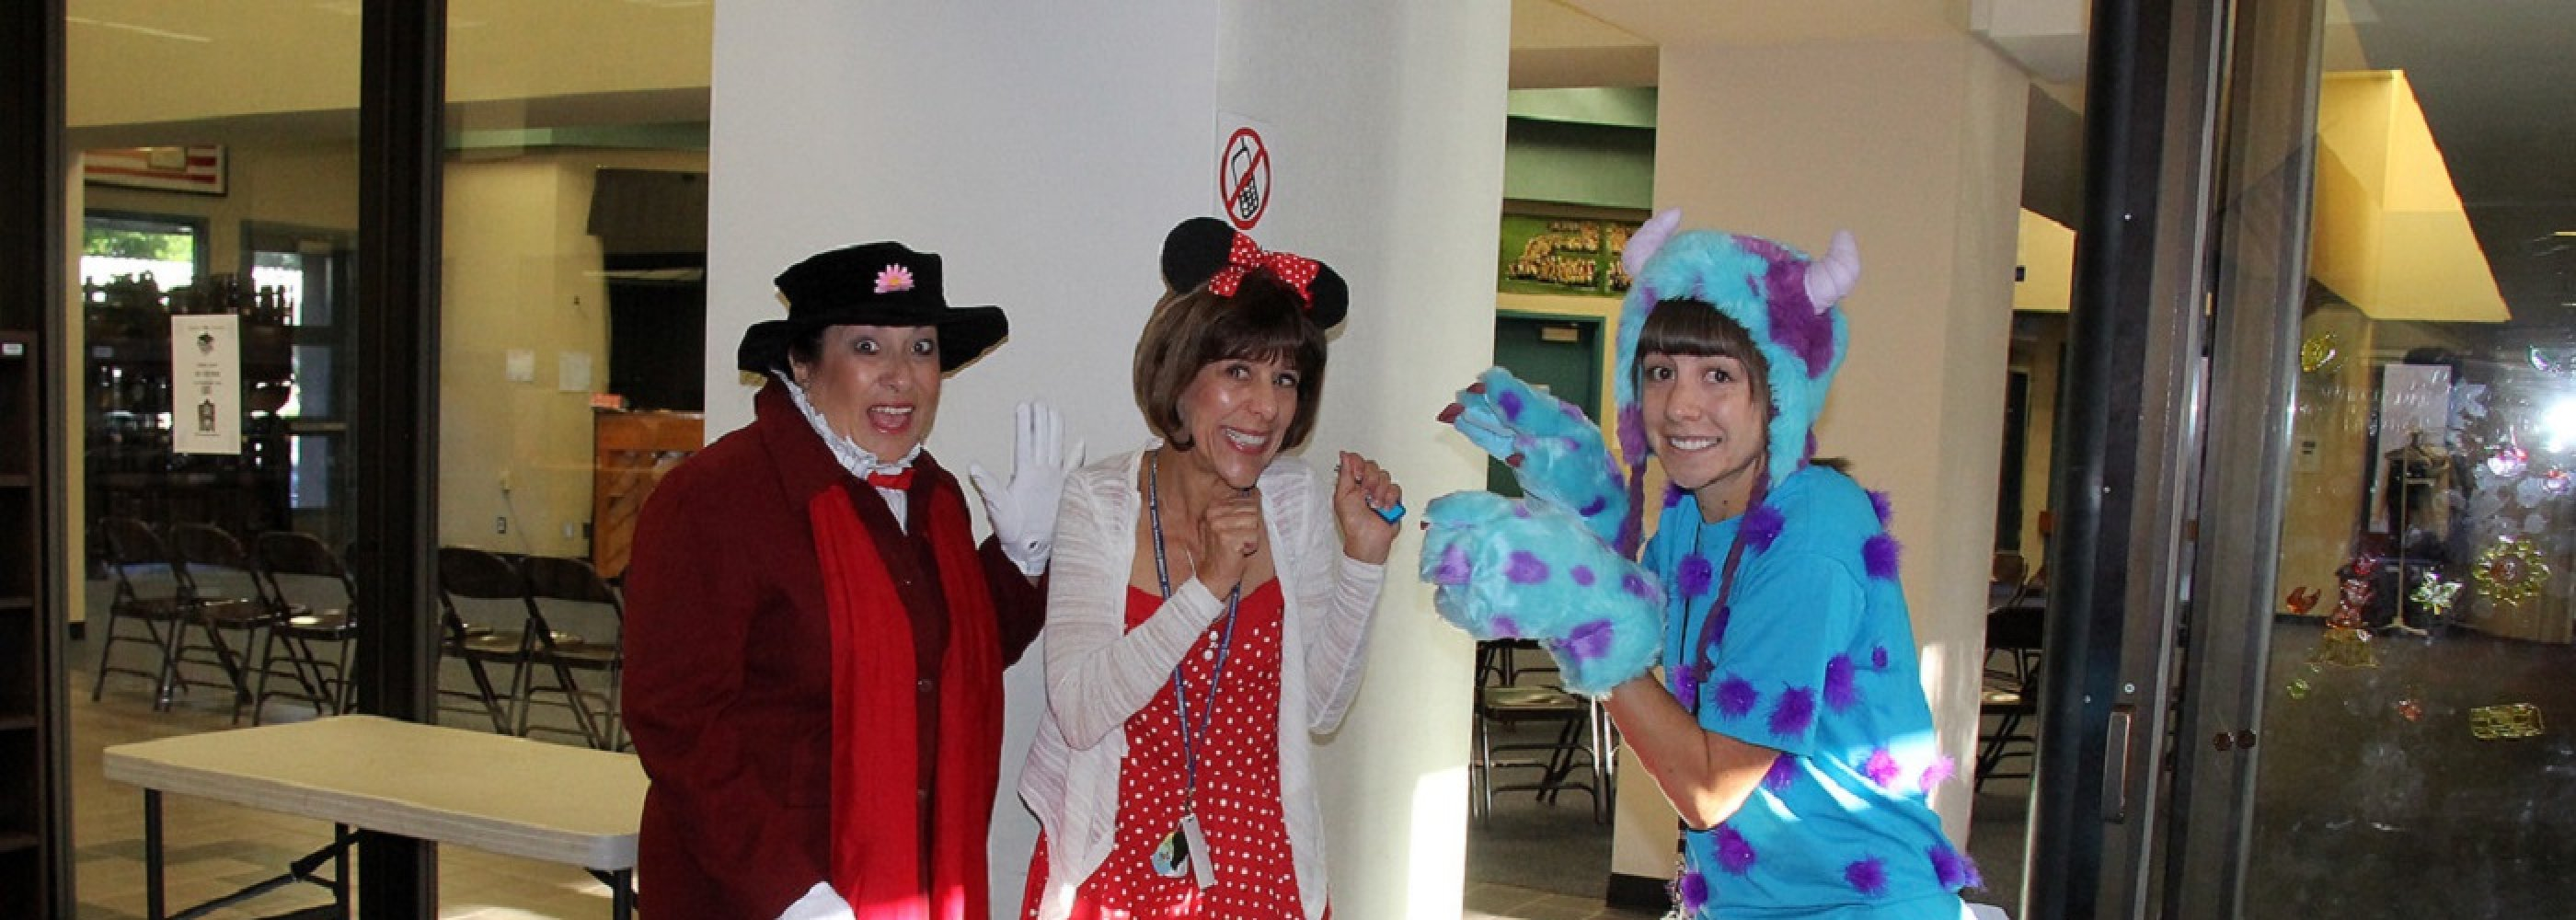 Principal and Teachers Dressed as Disney Characters